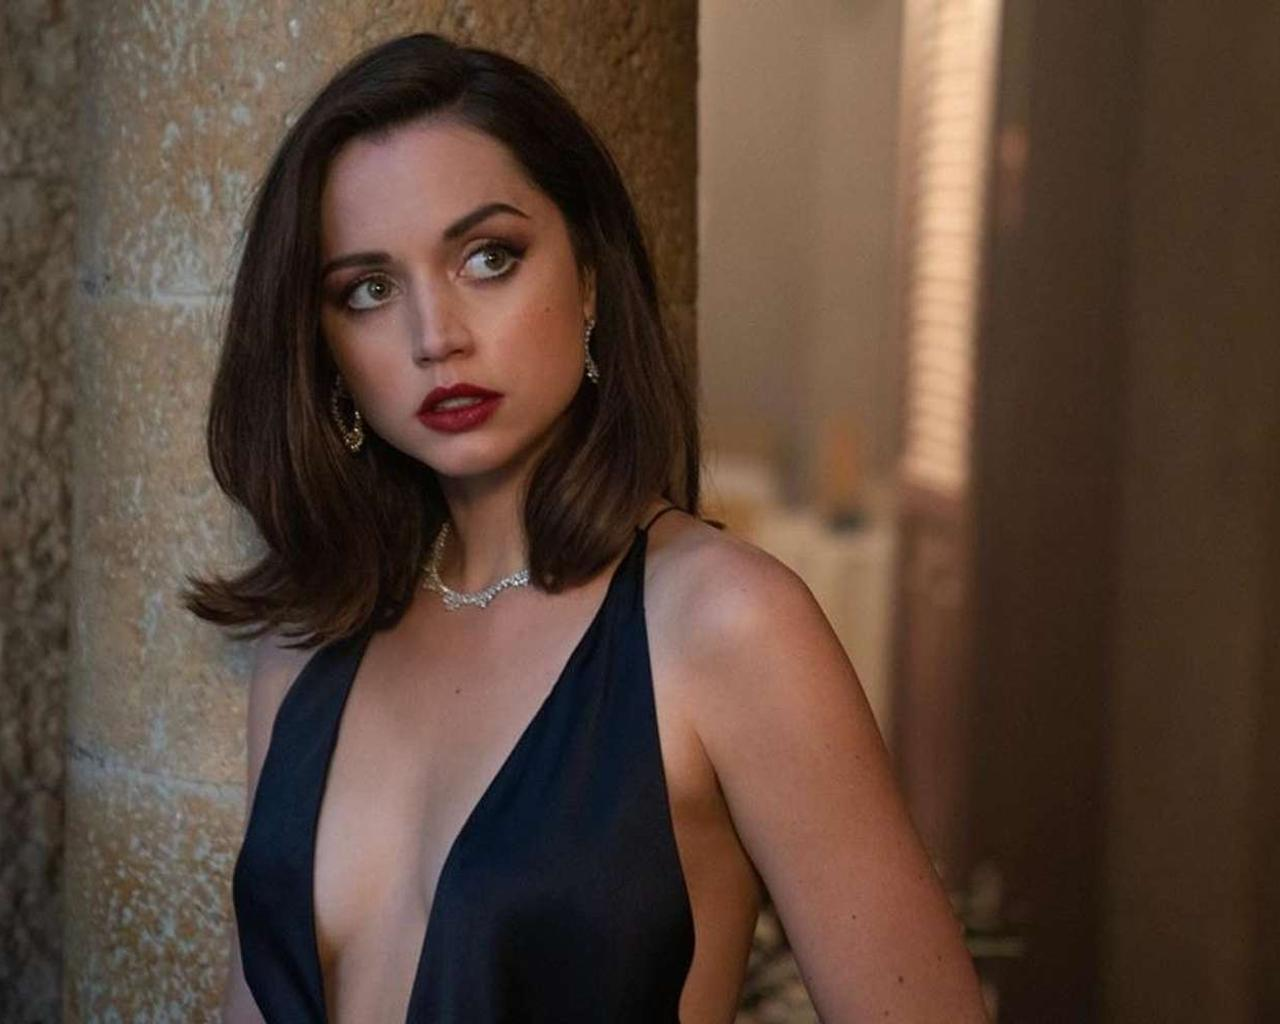 Anna De Armas Should Come to Bond Movie's Premier Alone, Producers Say — Do They Have a Point?